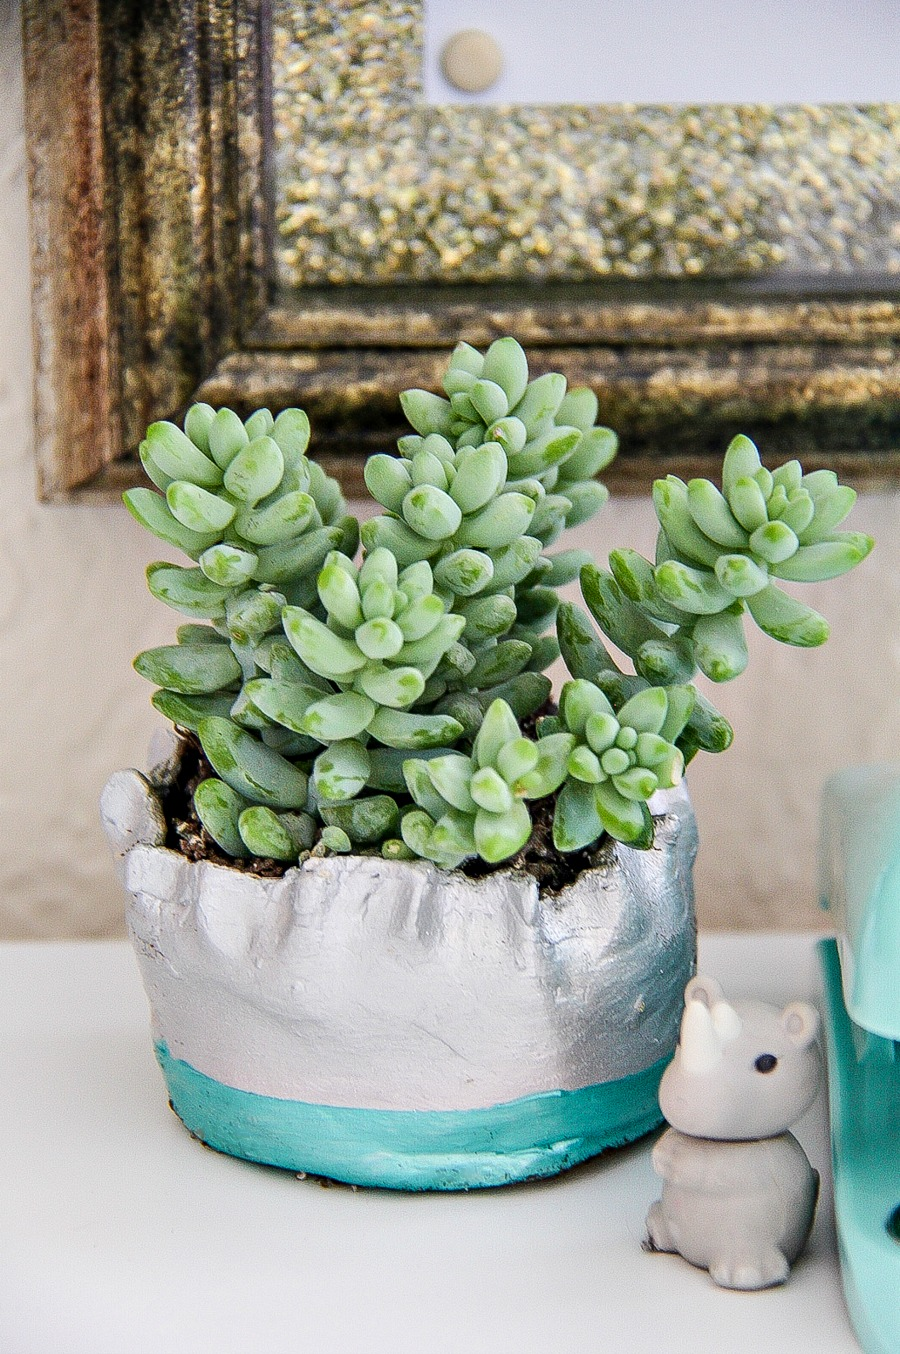 A handmade clay planter painted silver and blue with a succulent planted inside it.